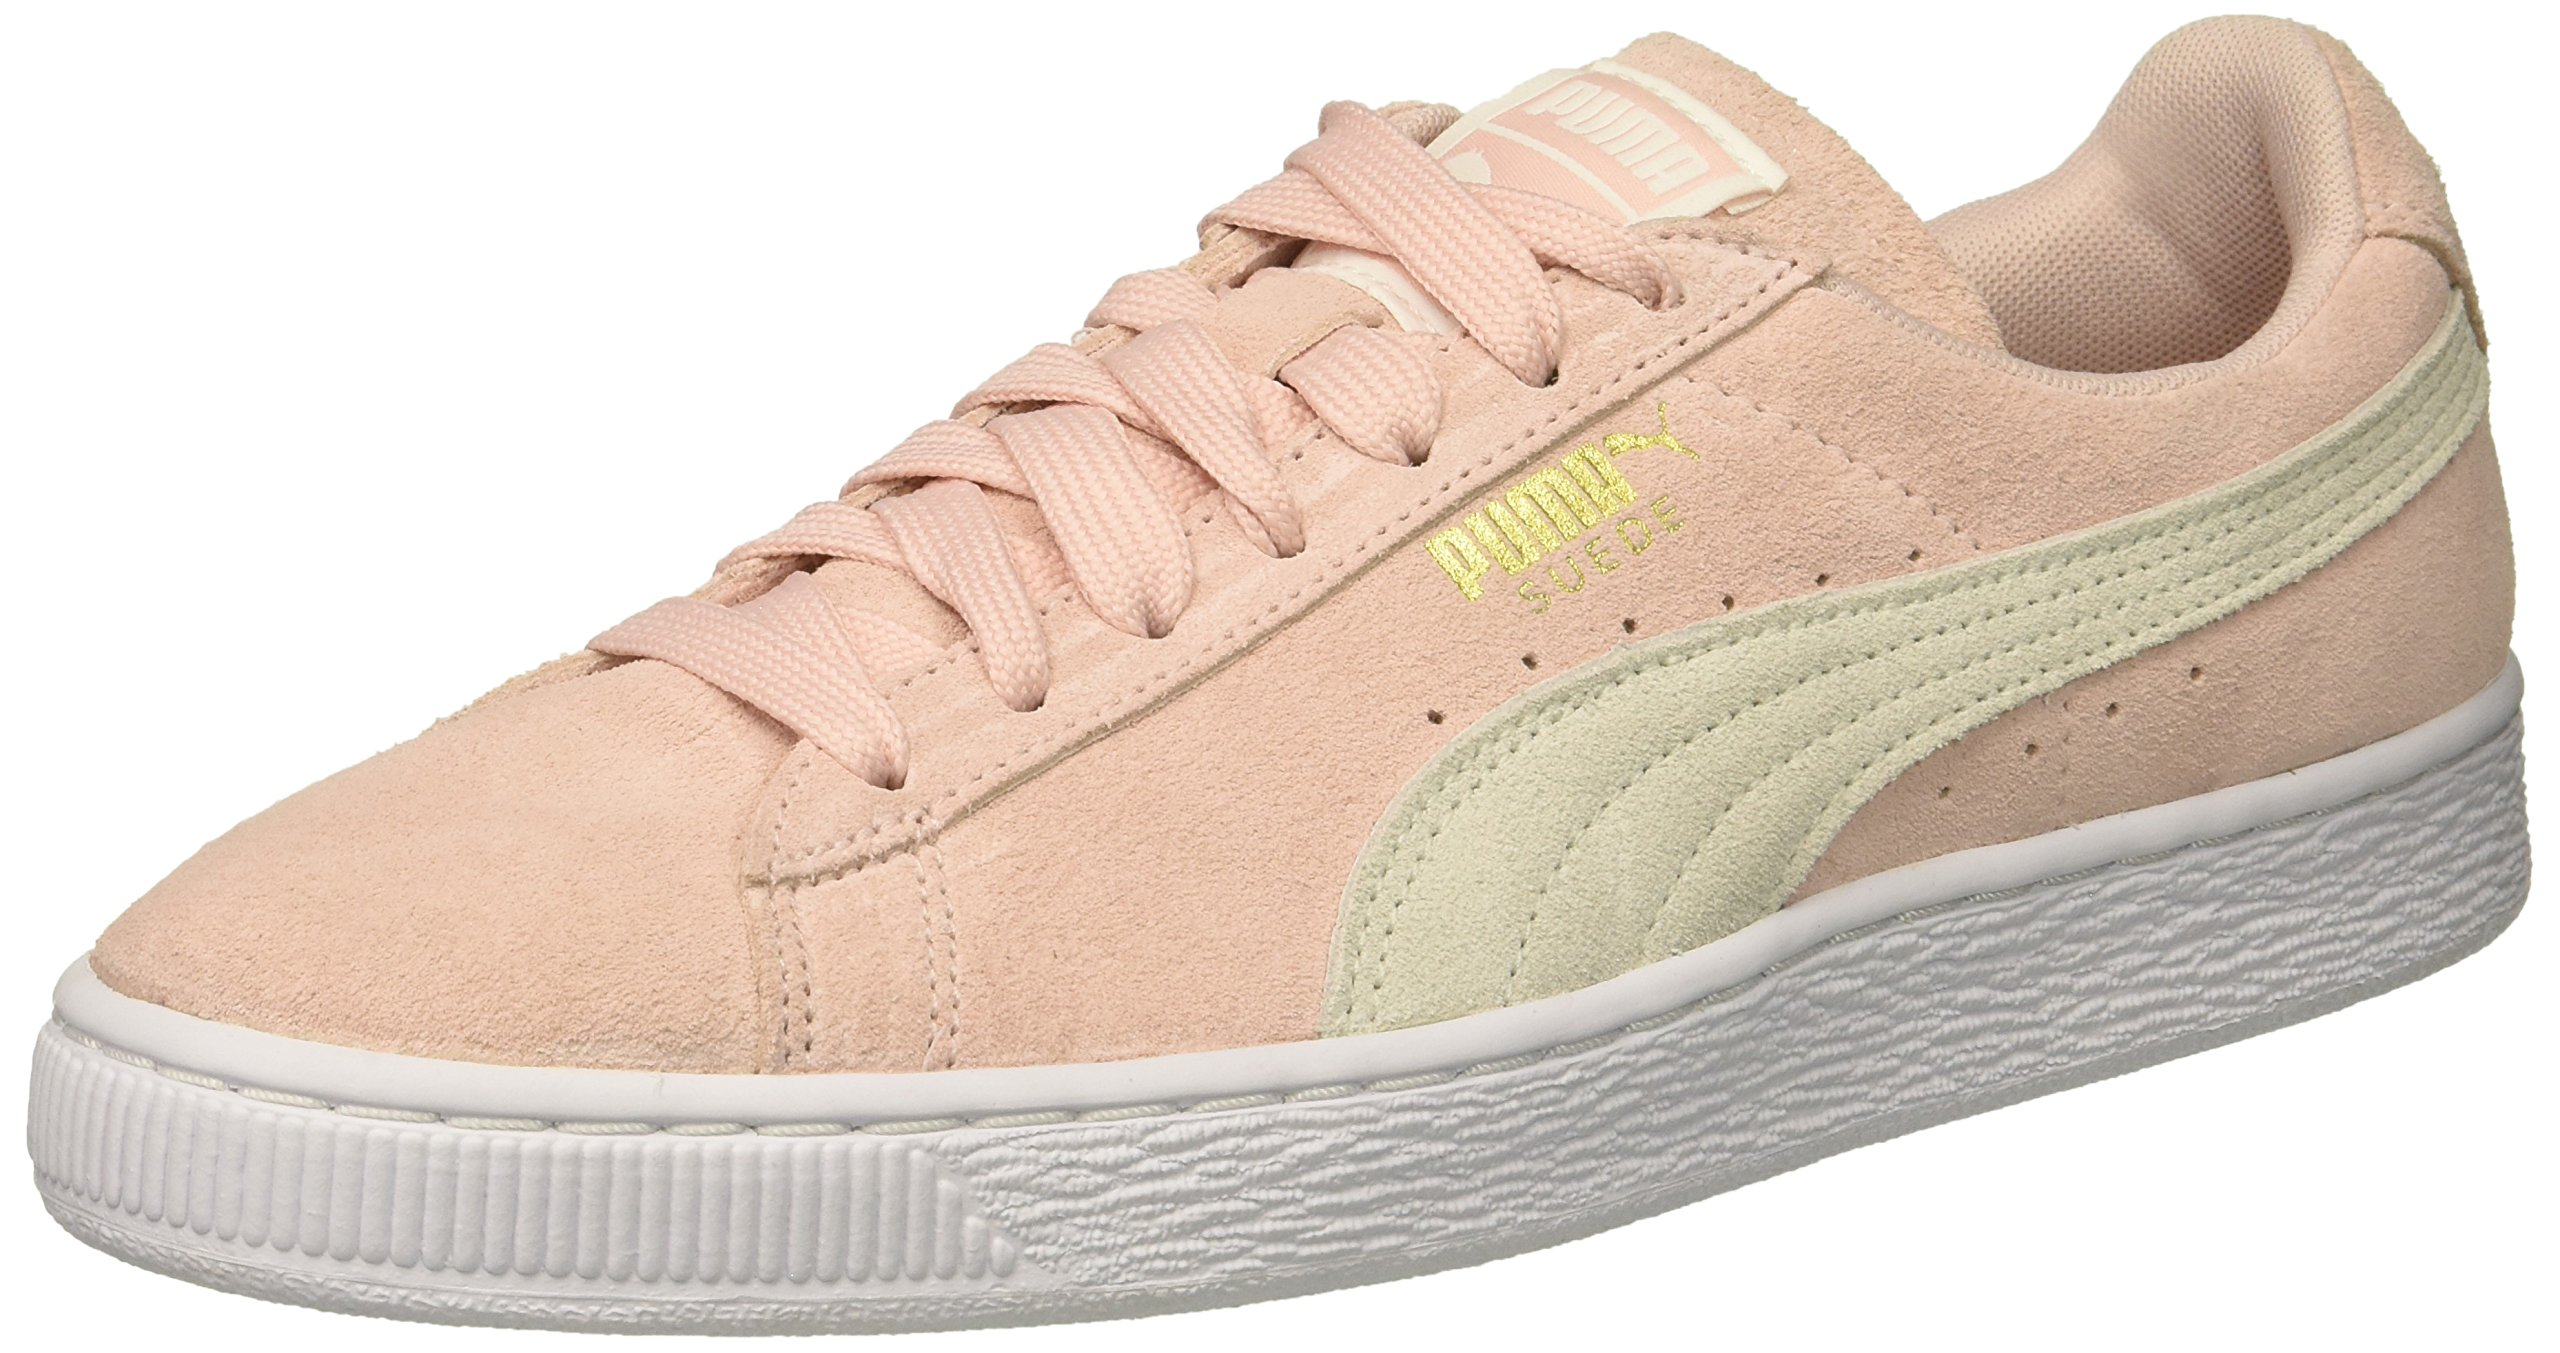 PUMA Women's Suede Classic Wn Sneaker, Veiled Rose White-Gold, 8 M US